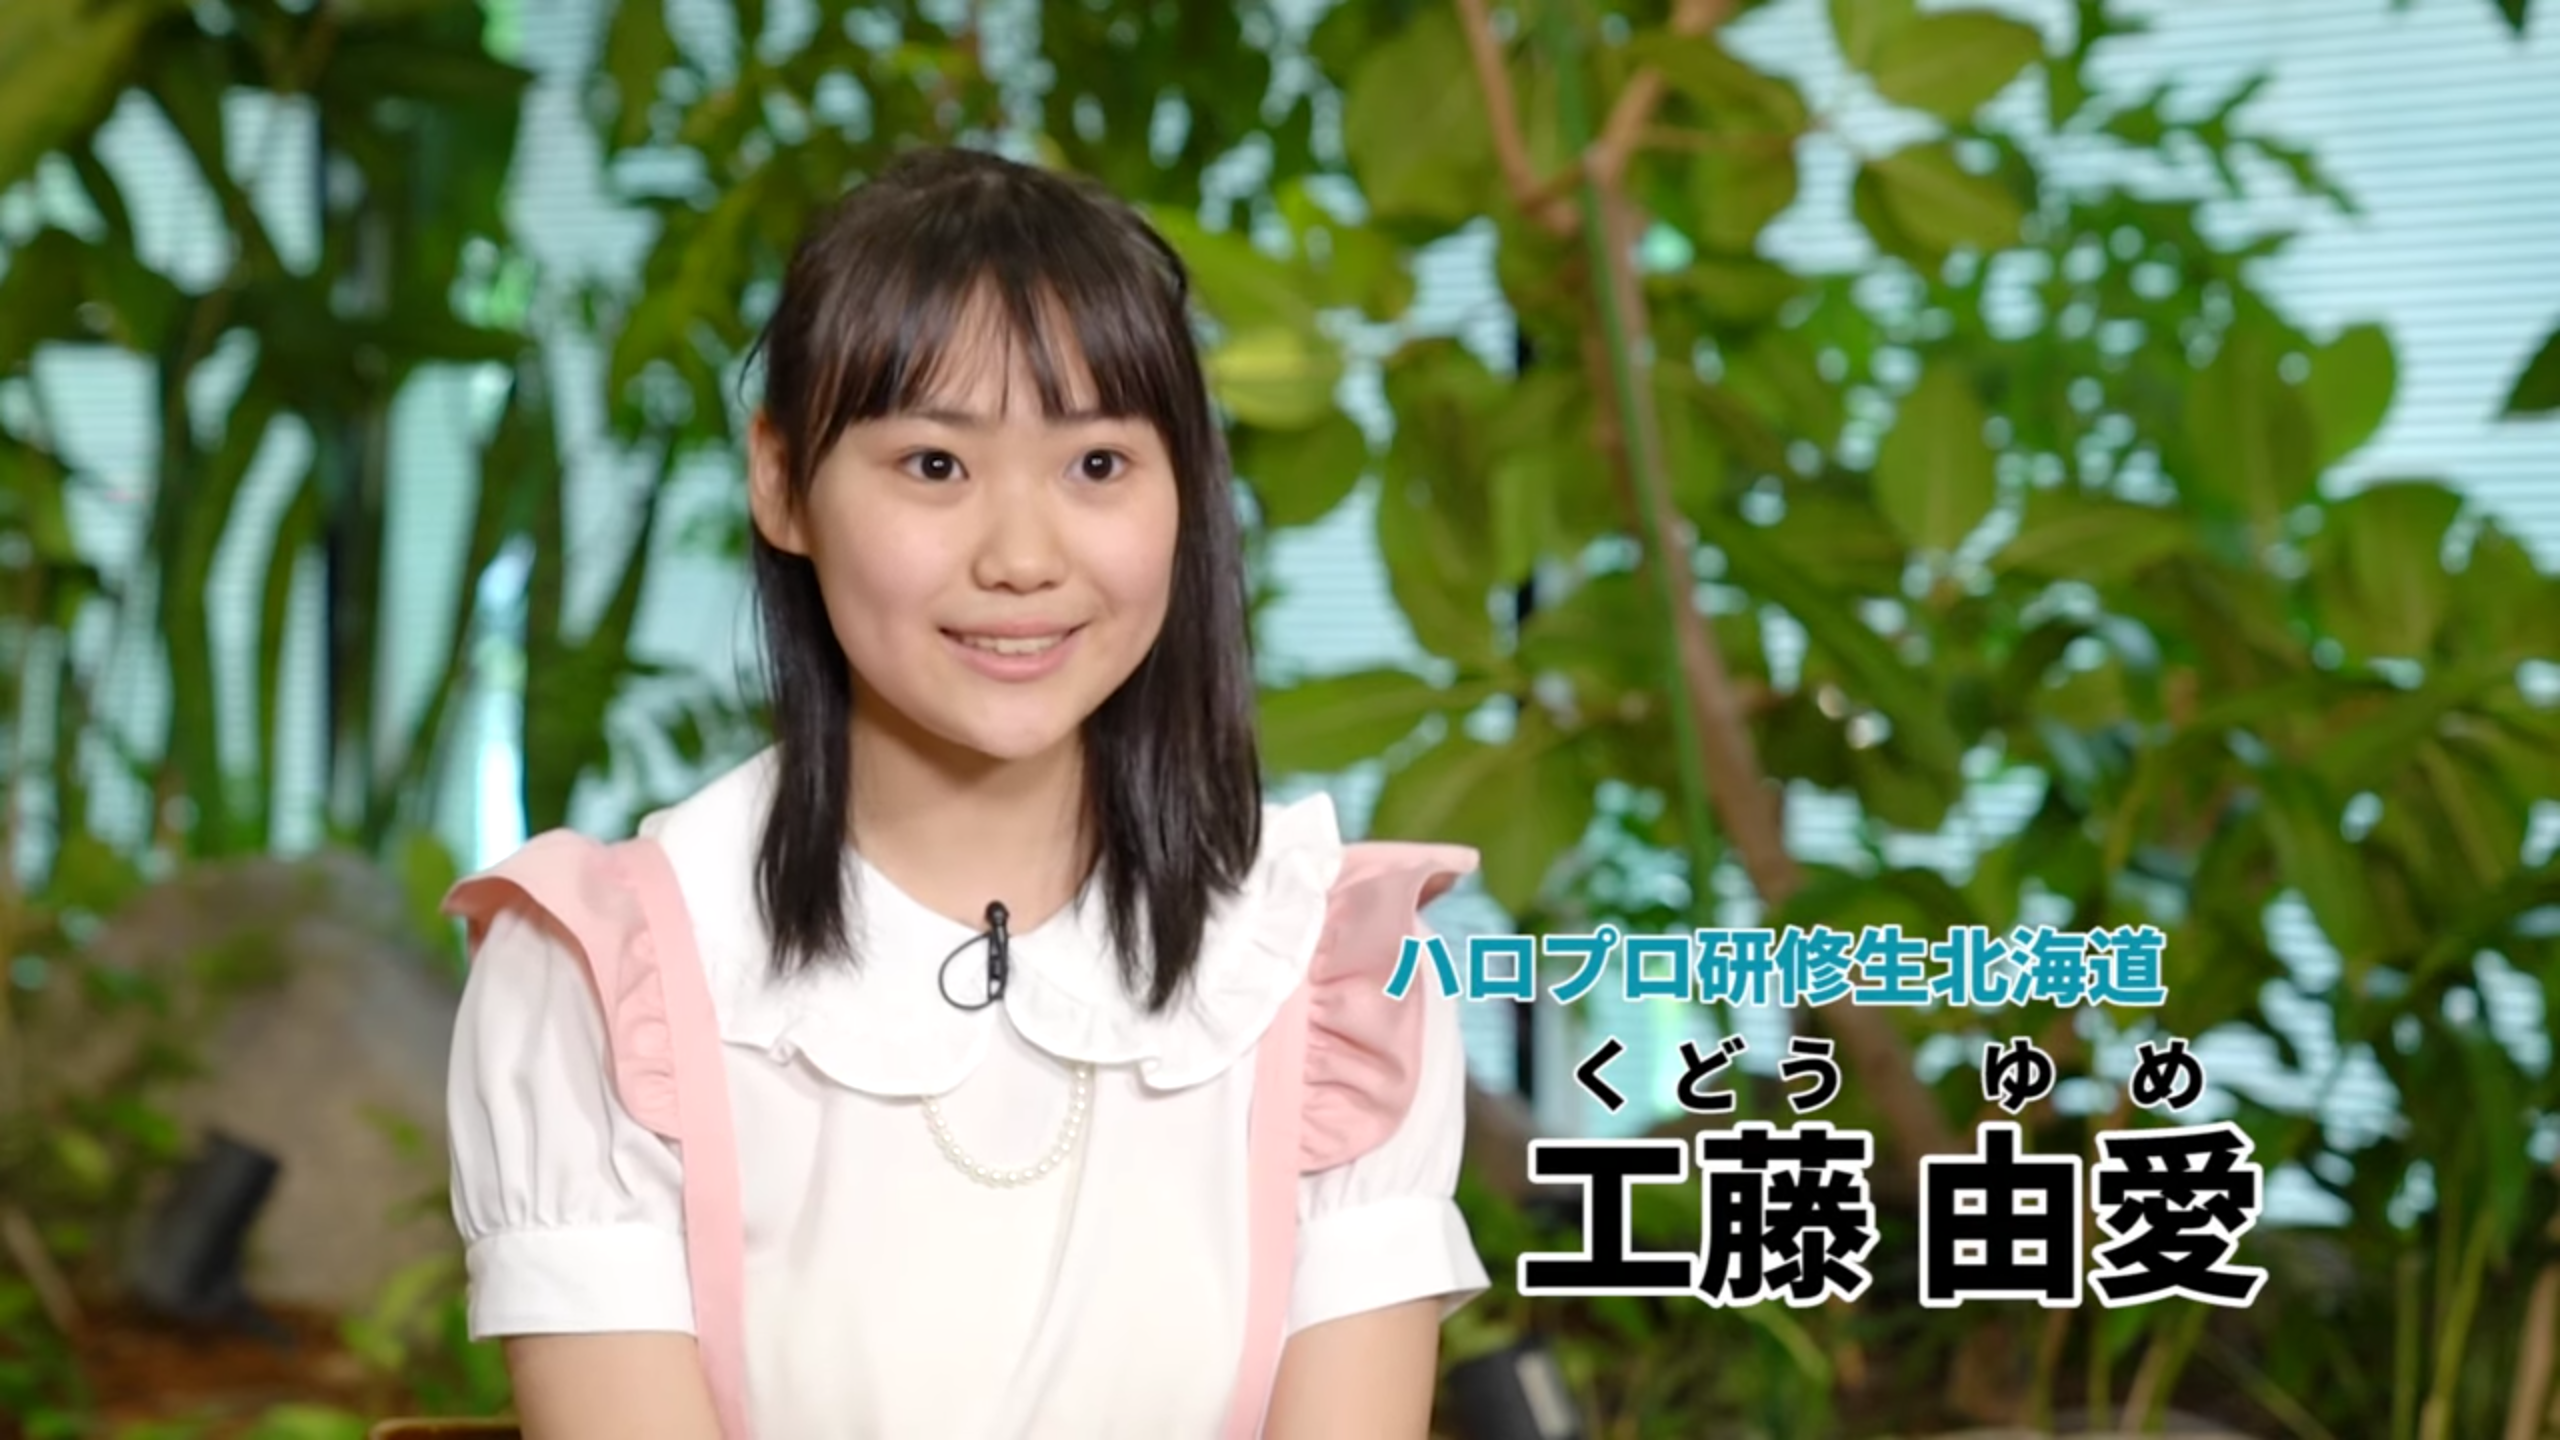 A girl in a white blouse (Yume) with a pink-trimmed pink pinafore is sitting calmly. Text (in Japanese): Hello Pro Kenshuusei Hokkaido - Kudo Yume